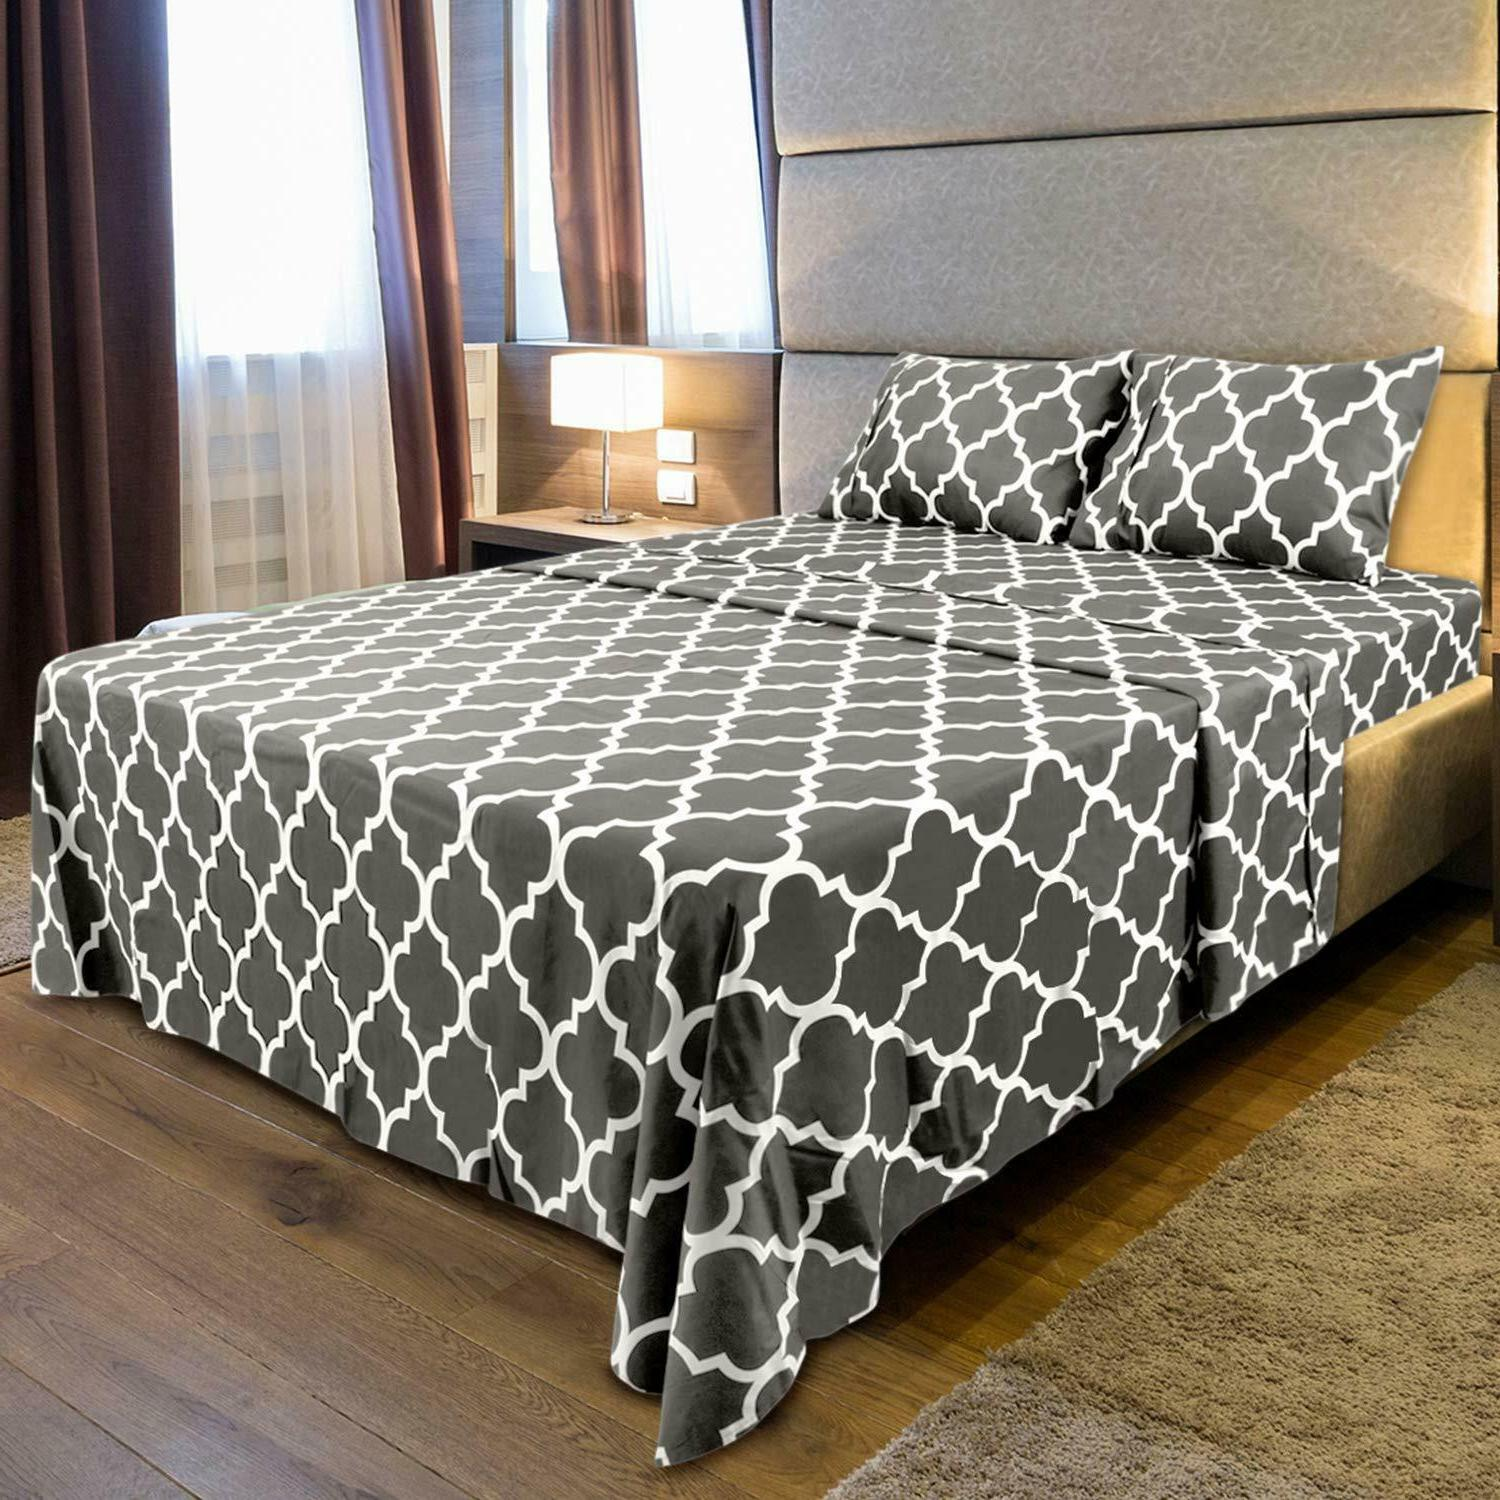 3Pc Set Fitted 1 Flat Pillowcase